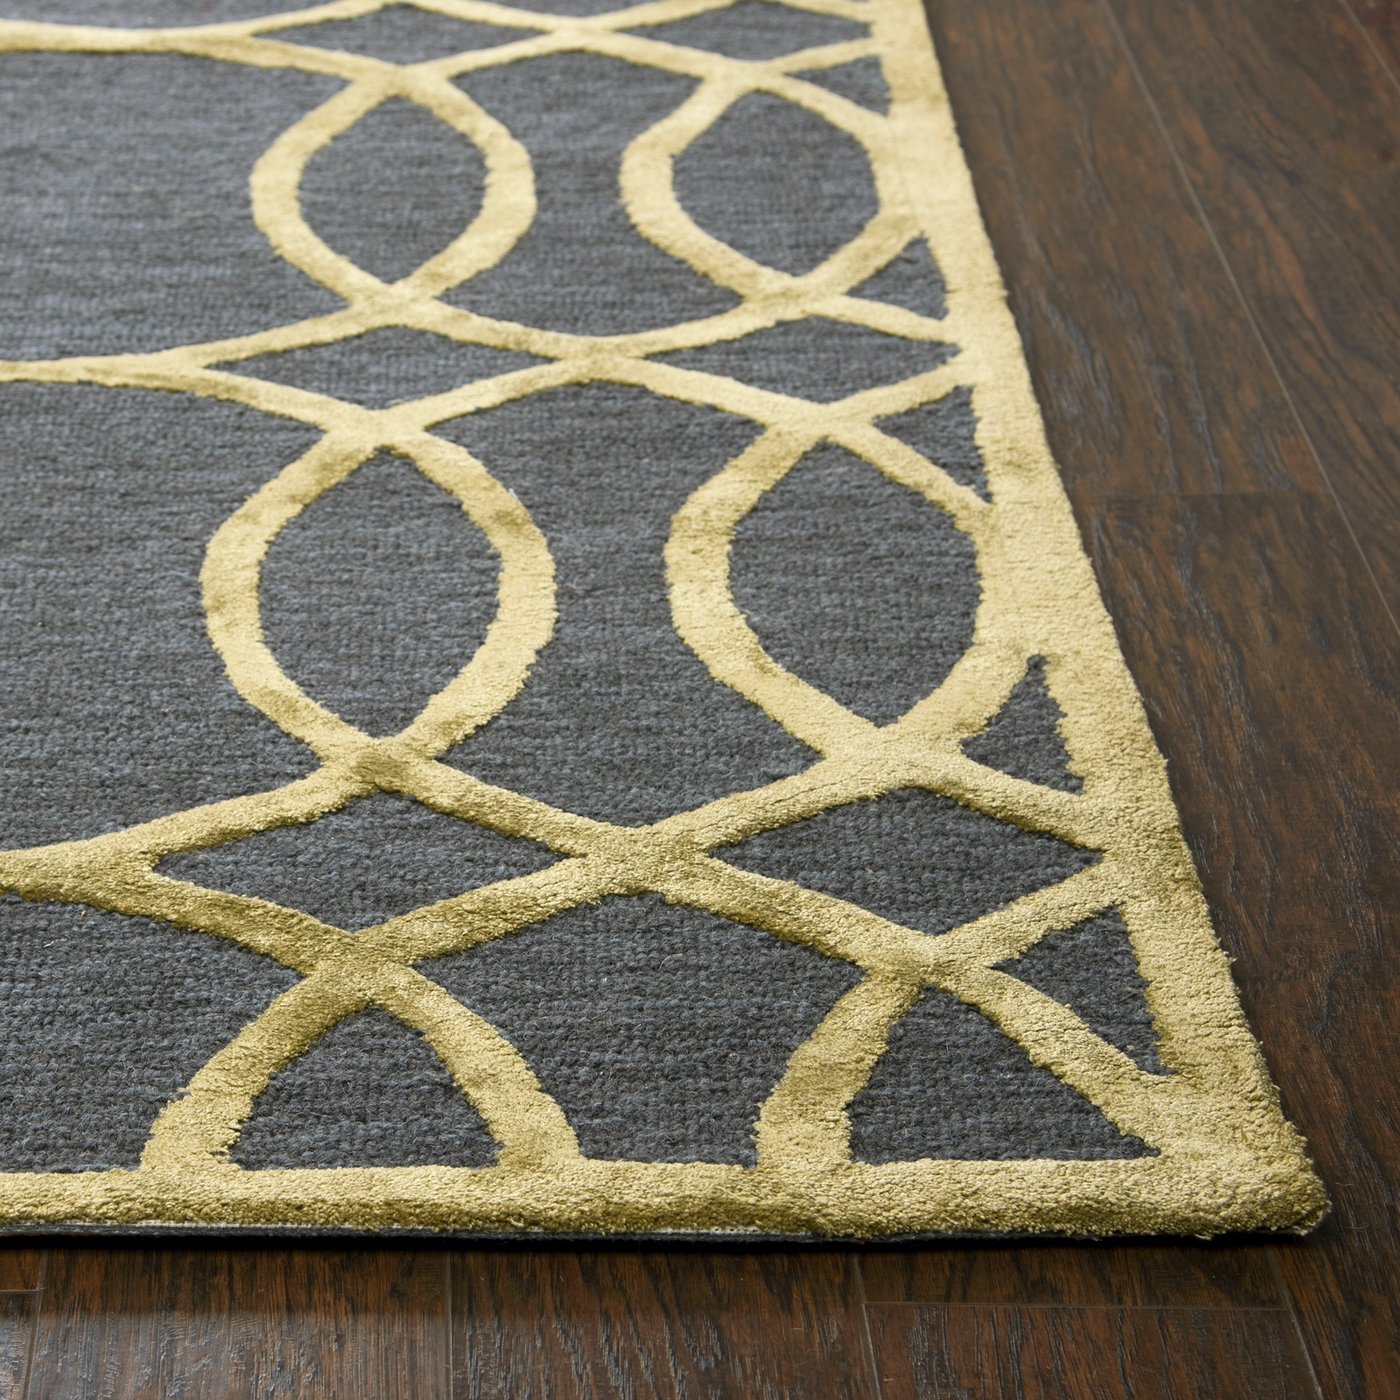 Large Area Rugs Gold: Monroe Circular Trellis Wool Area Rug In Blue & Gold, 8' X 10